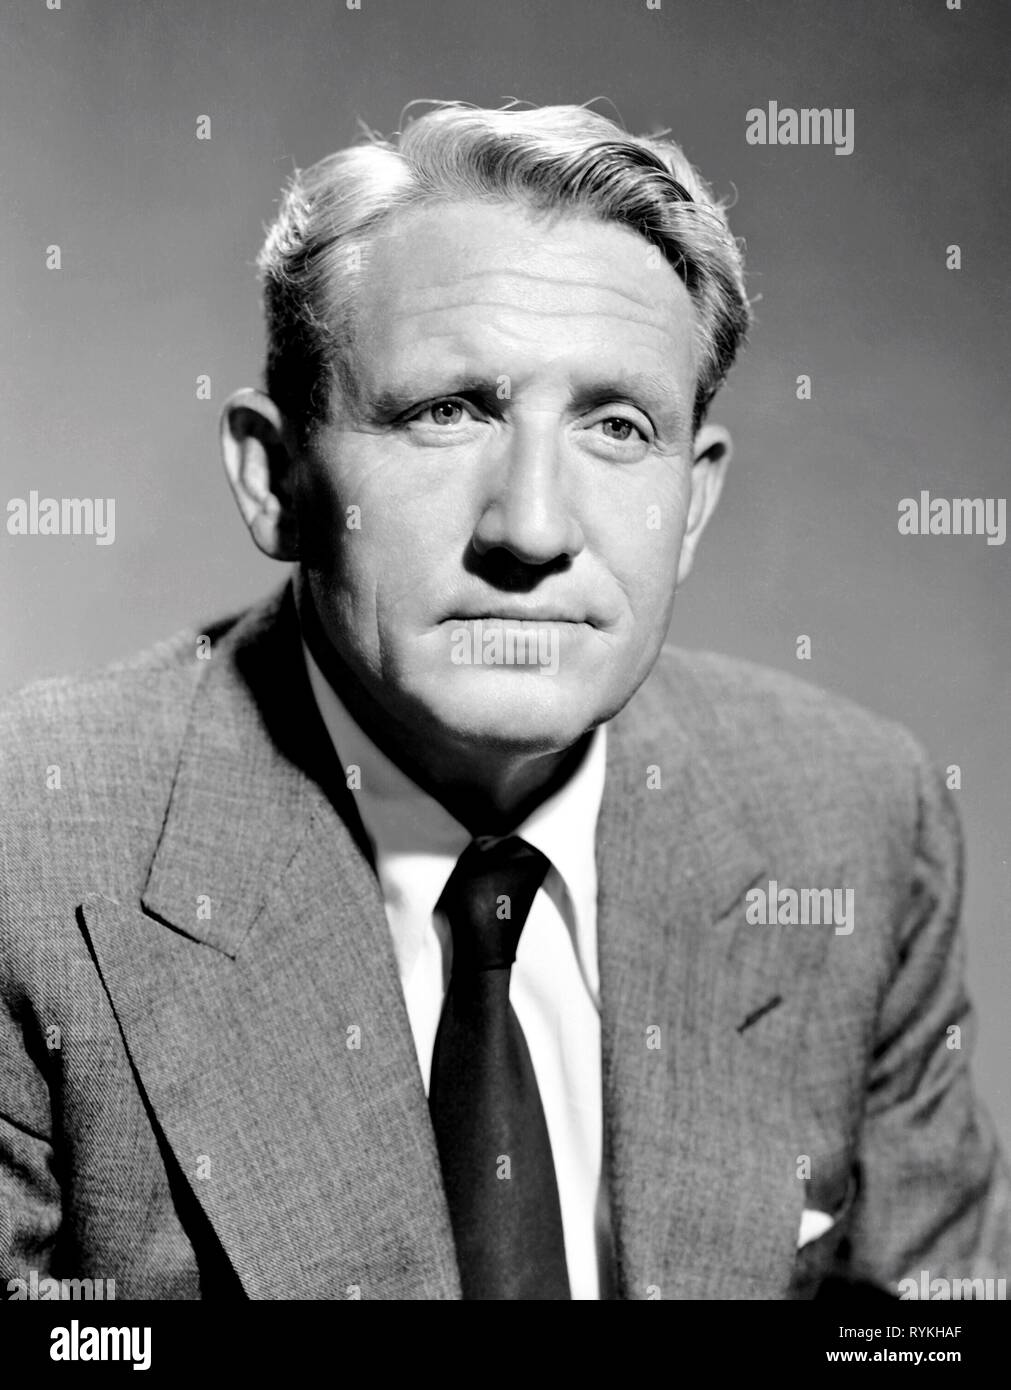 SPENCER TRACY, CASS TIMBERLANE, 1947 - Stock Image